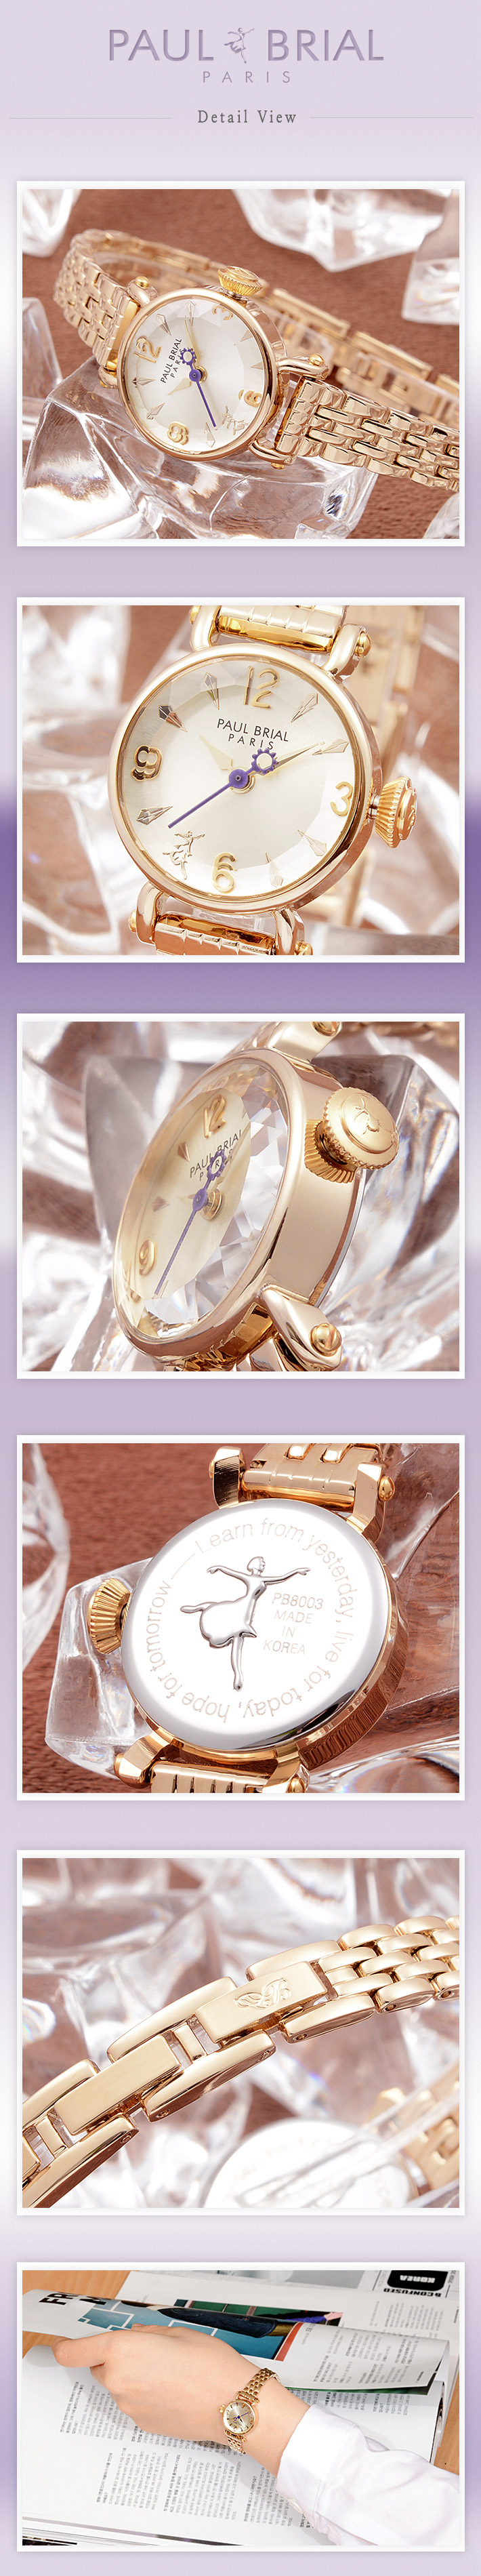 [ PAUL BRIAL ] KOREA MADE HIGH QUALITY LADIES GOLD BRACELET WATCH PB8003GD TOULOUSE